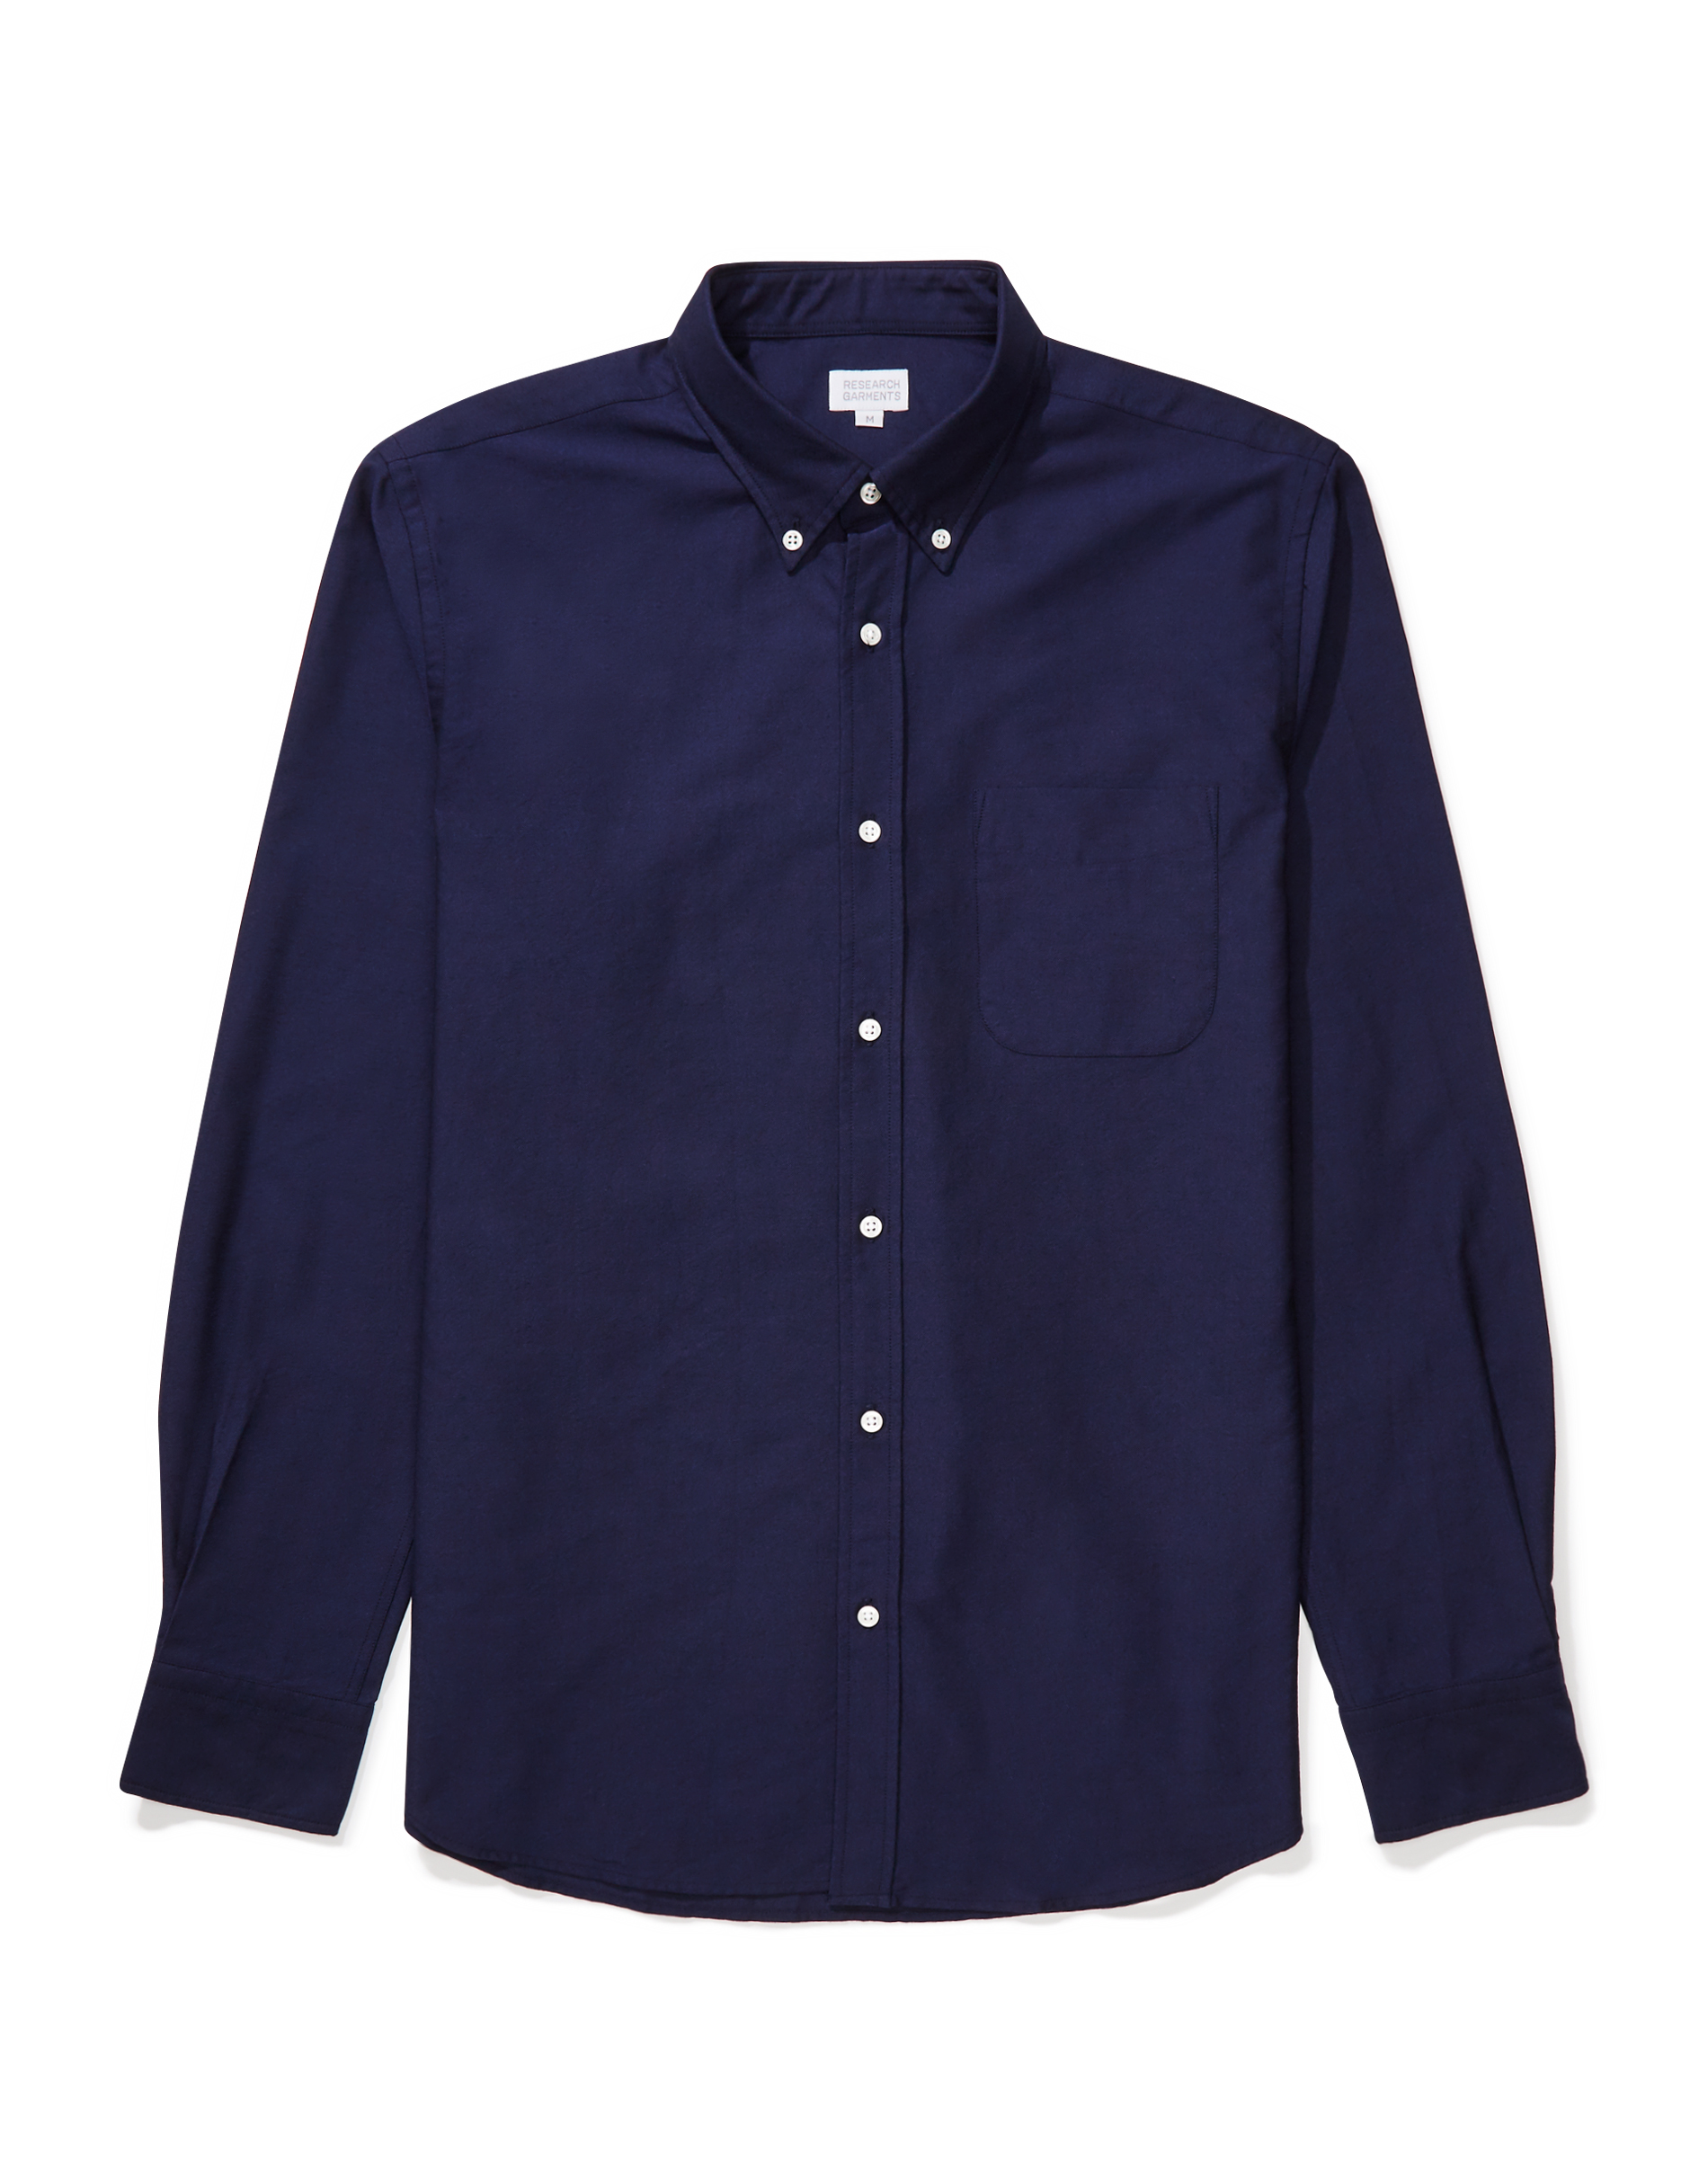 Research Garments Navy The Perfect Oxford Shirt